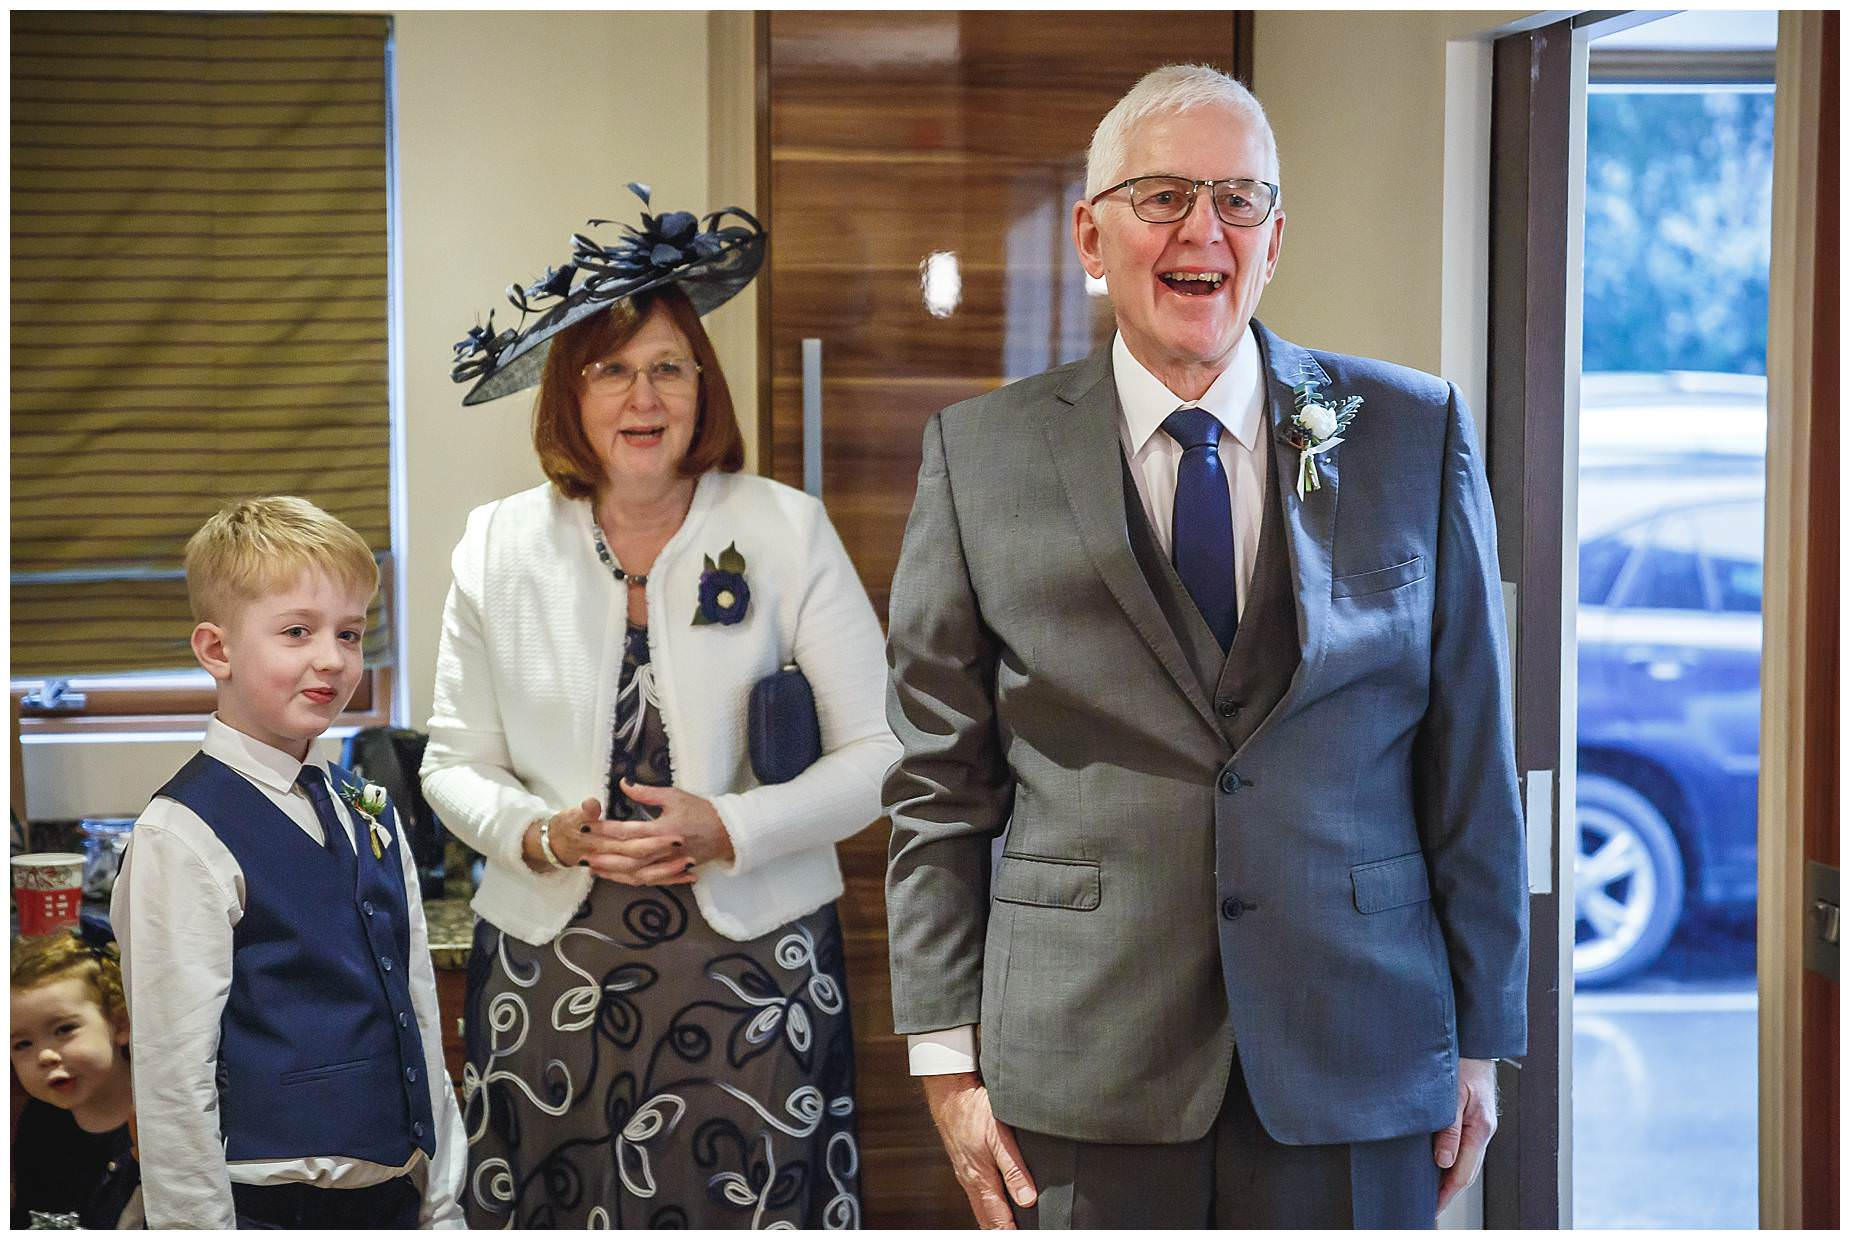 Dad sees bride for the first time at Northbrook Park wedding